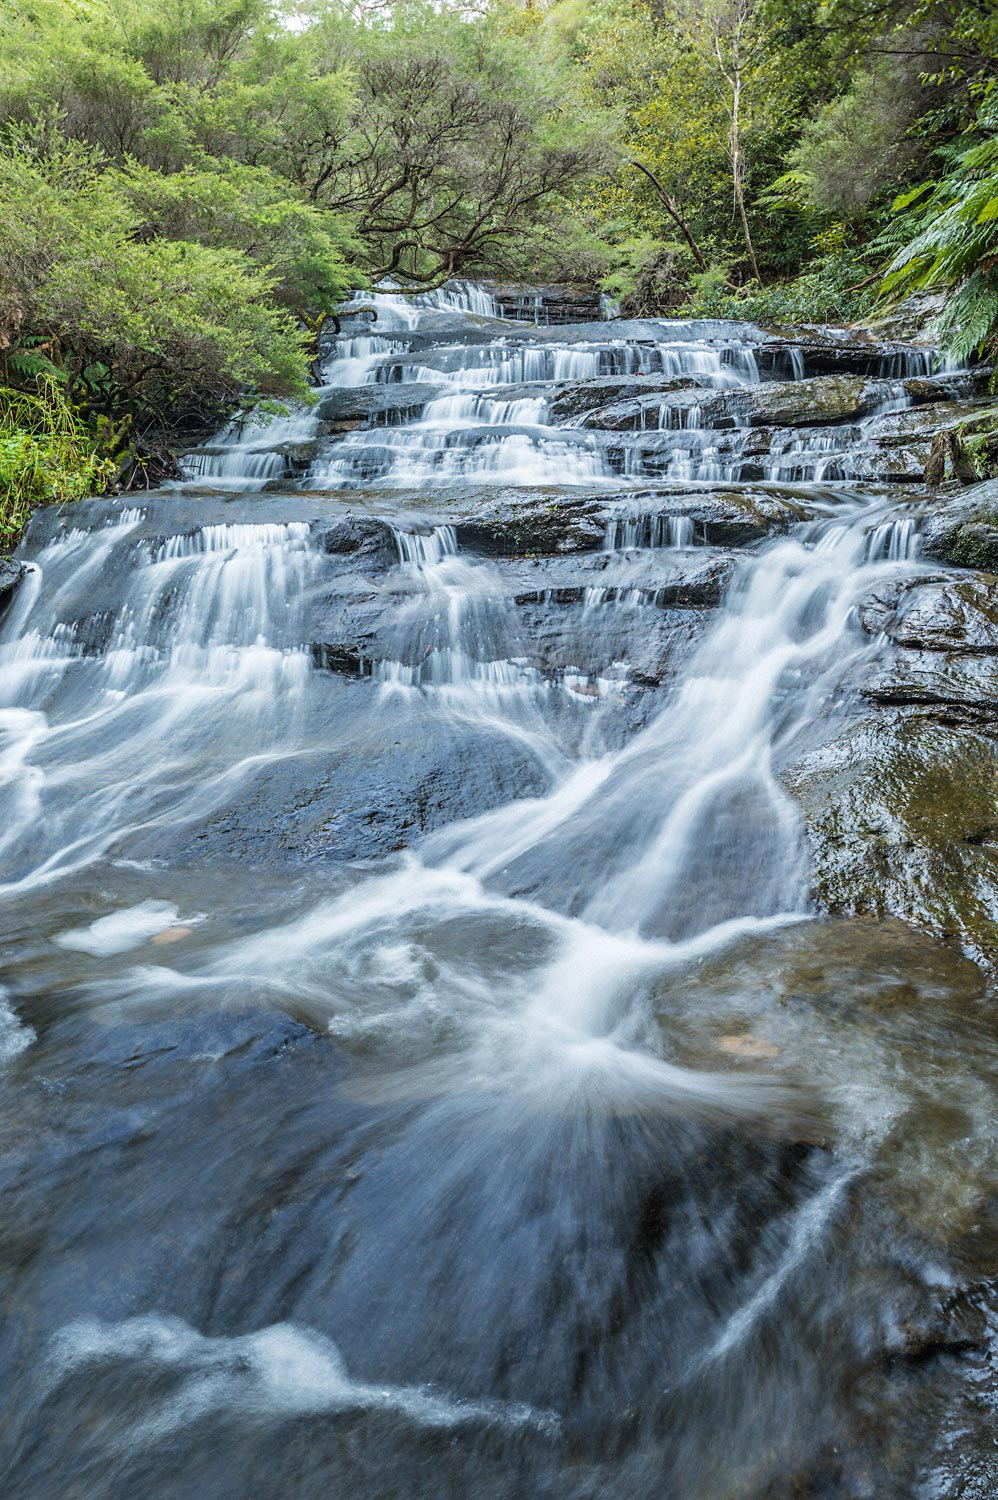 Warren-Hinder-Upper-Cascades-Leura-Cascades.jpg